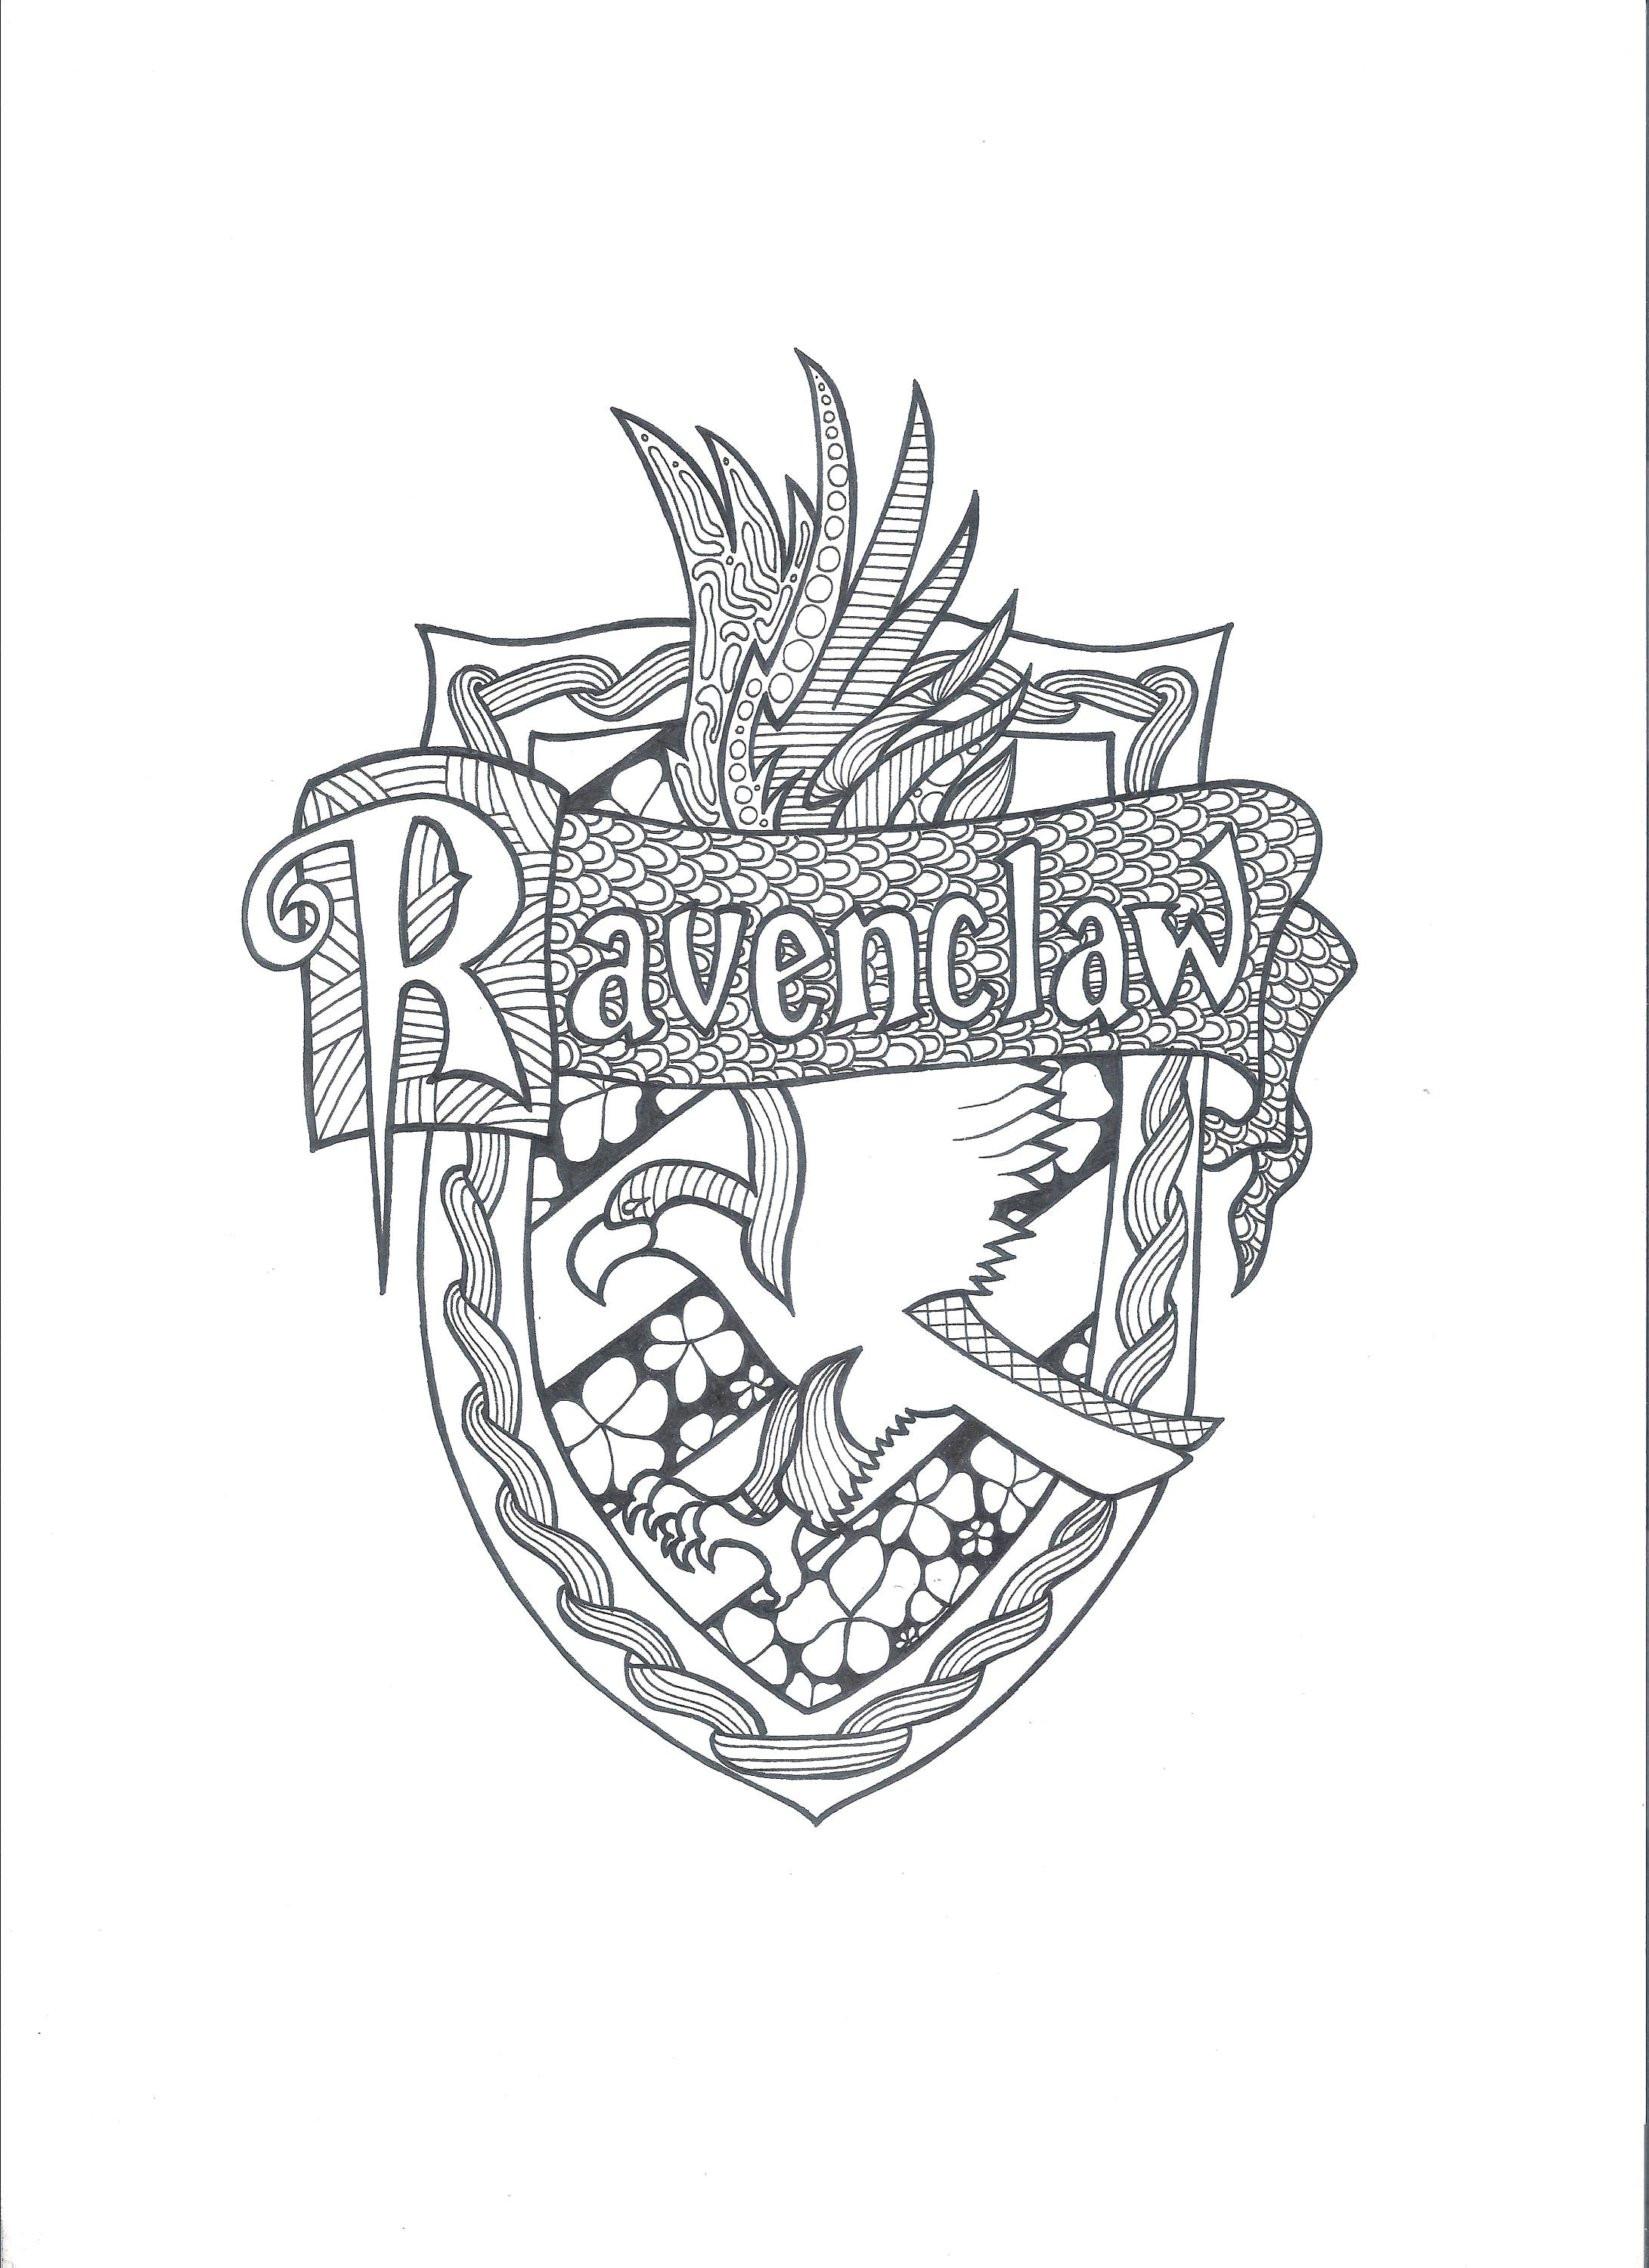 Harry Potter Ravenclaw Pdf Coloring Page Striking Crest Lively